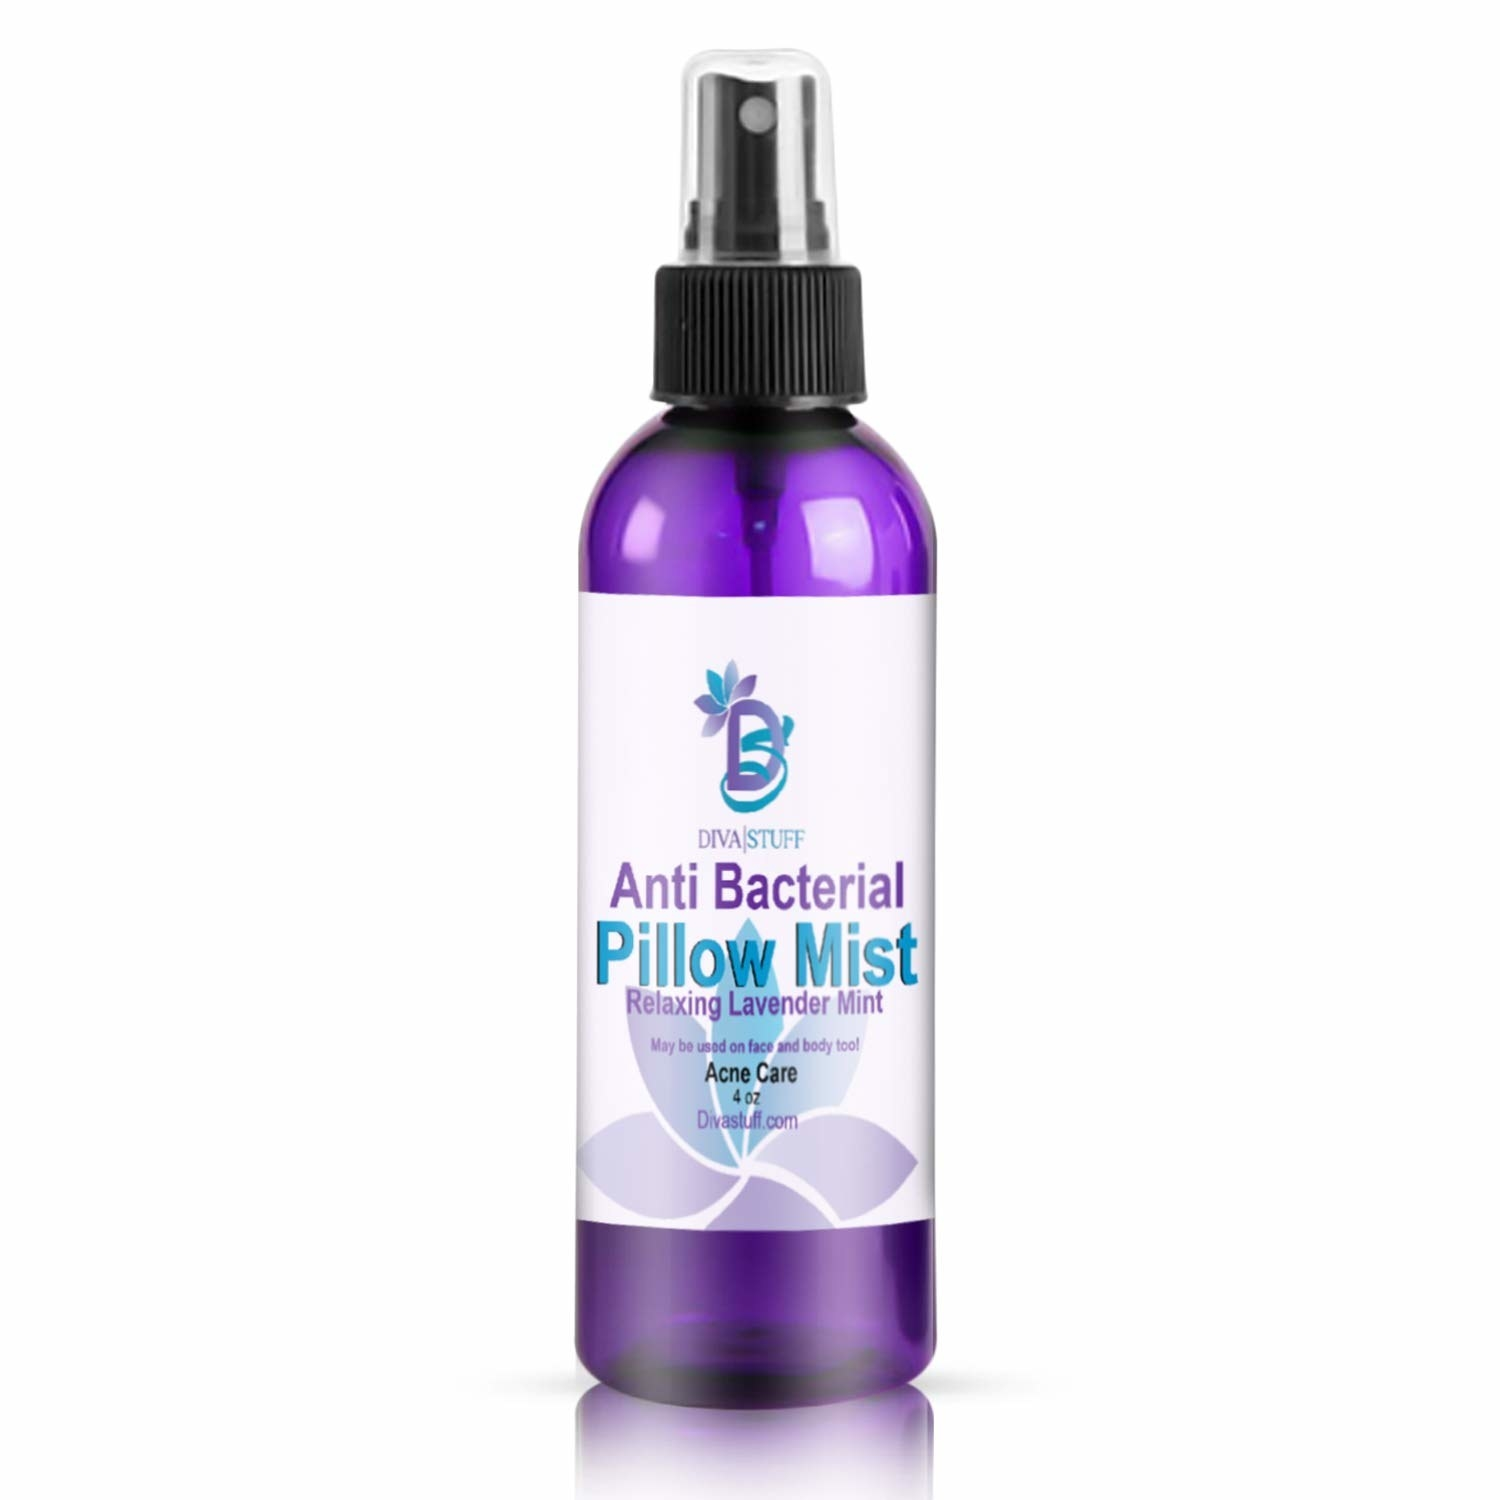 The pillow mist in its bottle